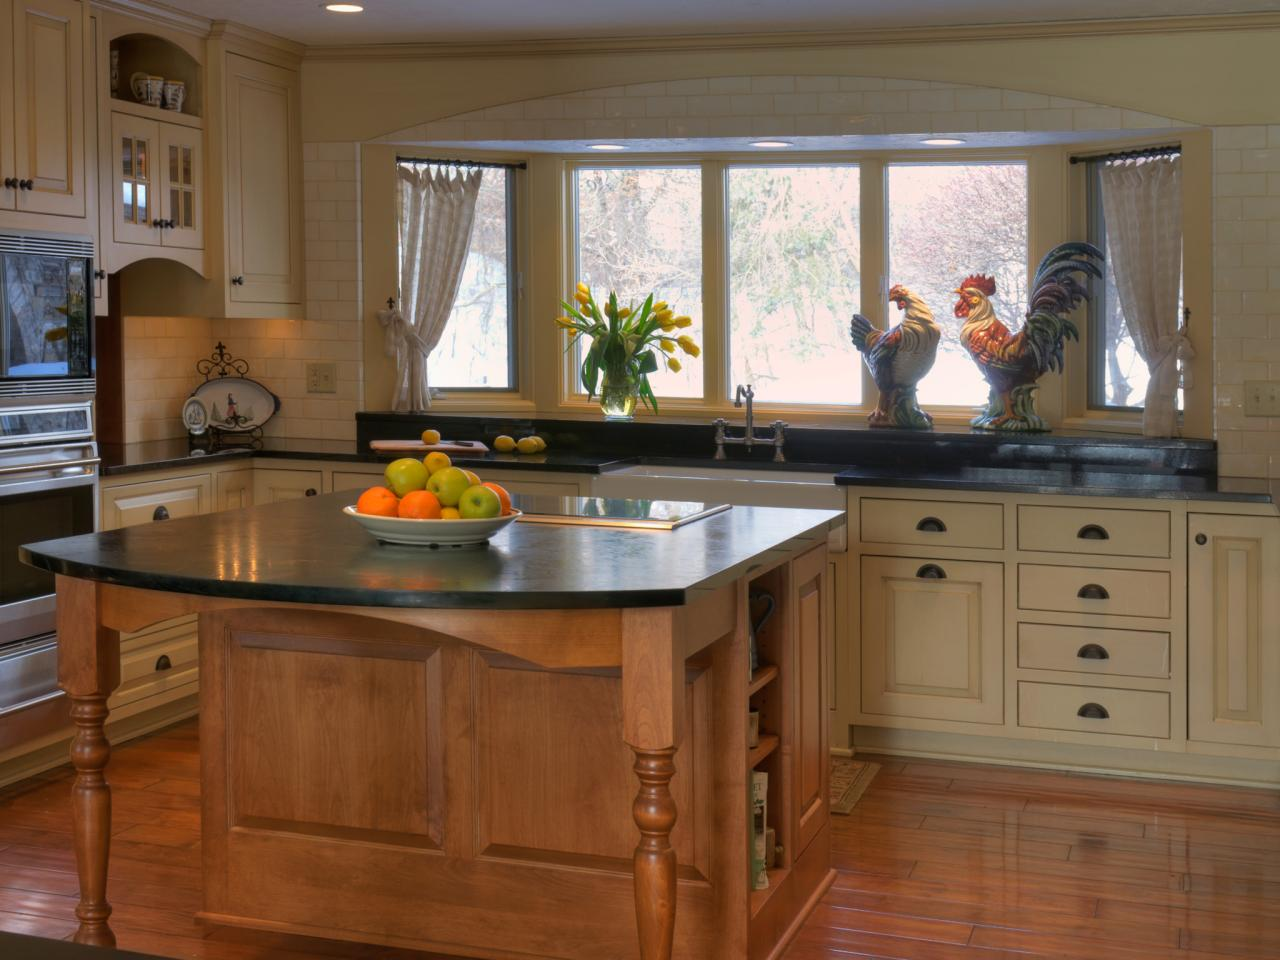 Country kitchens options and ideas hgtv for Country kitchen cabinets